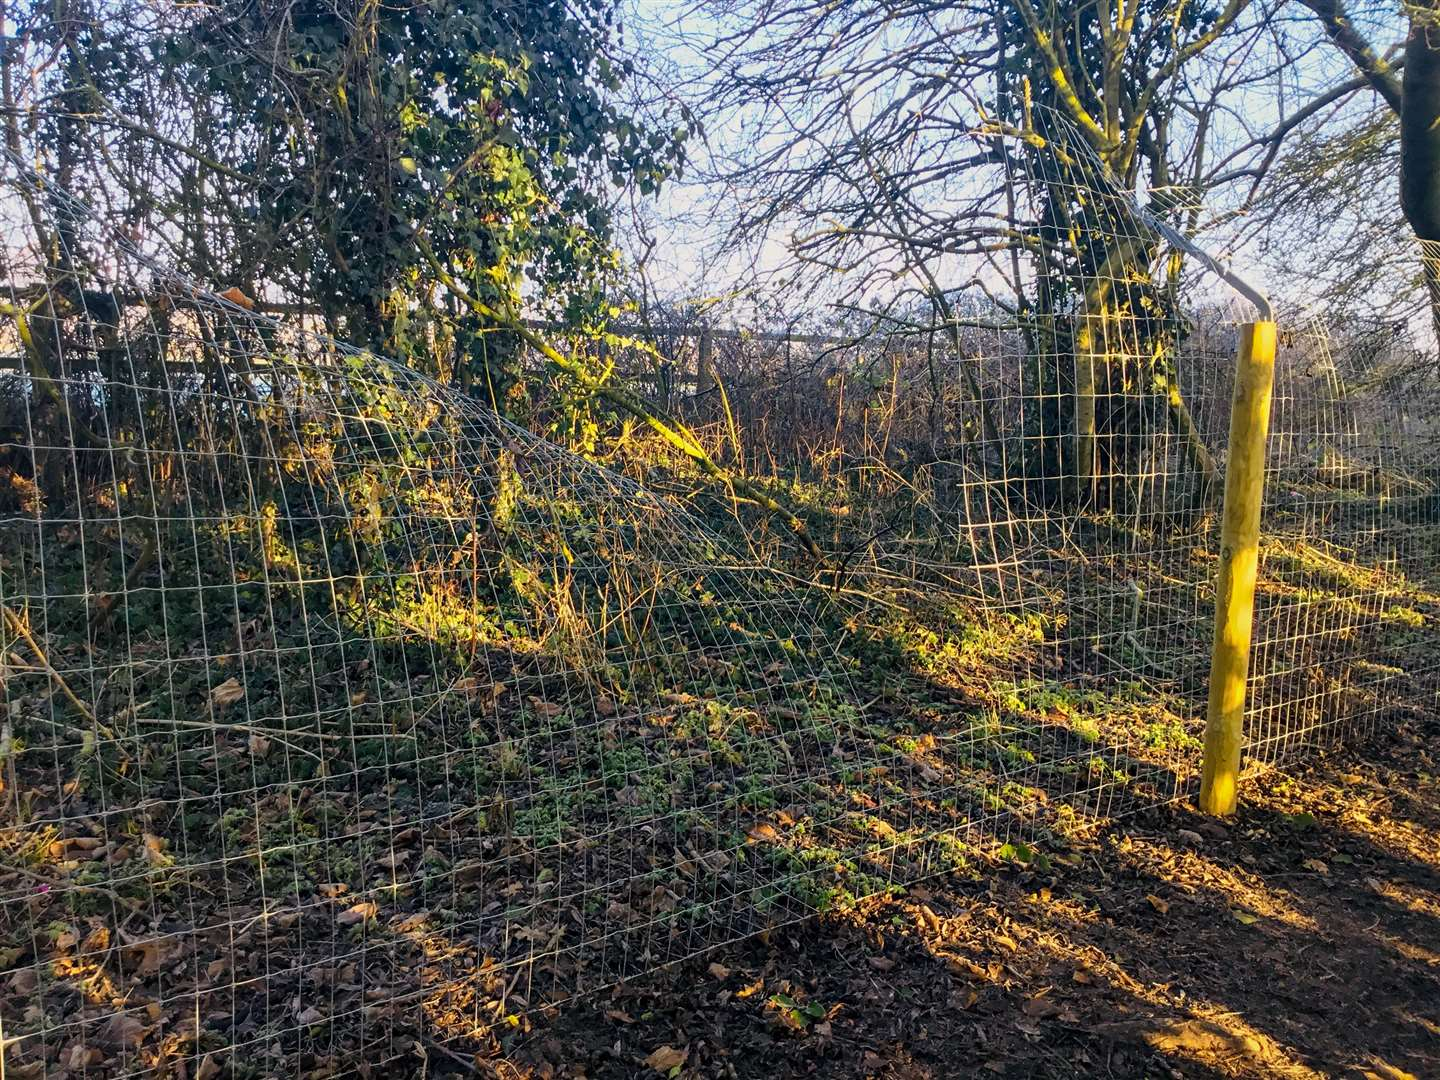 Manea otter fence has been repeatedly vandalised. (6909304)